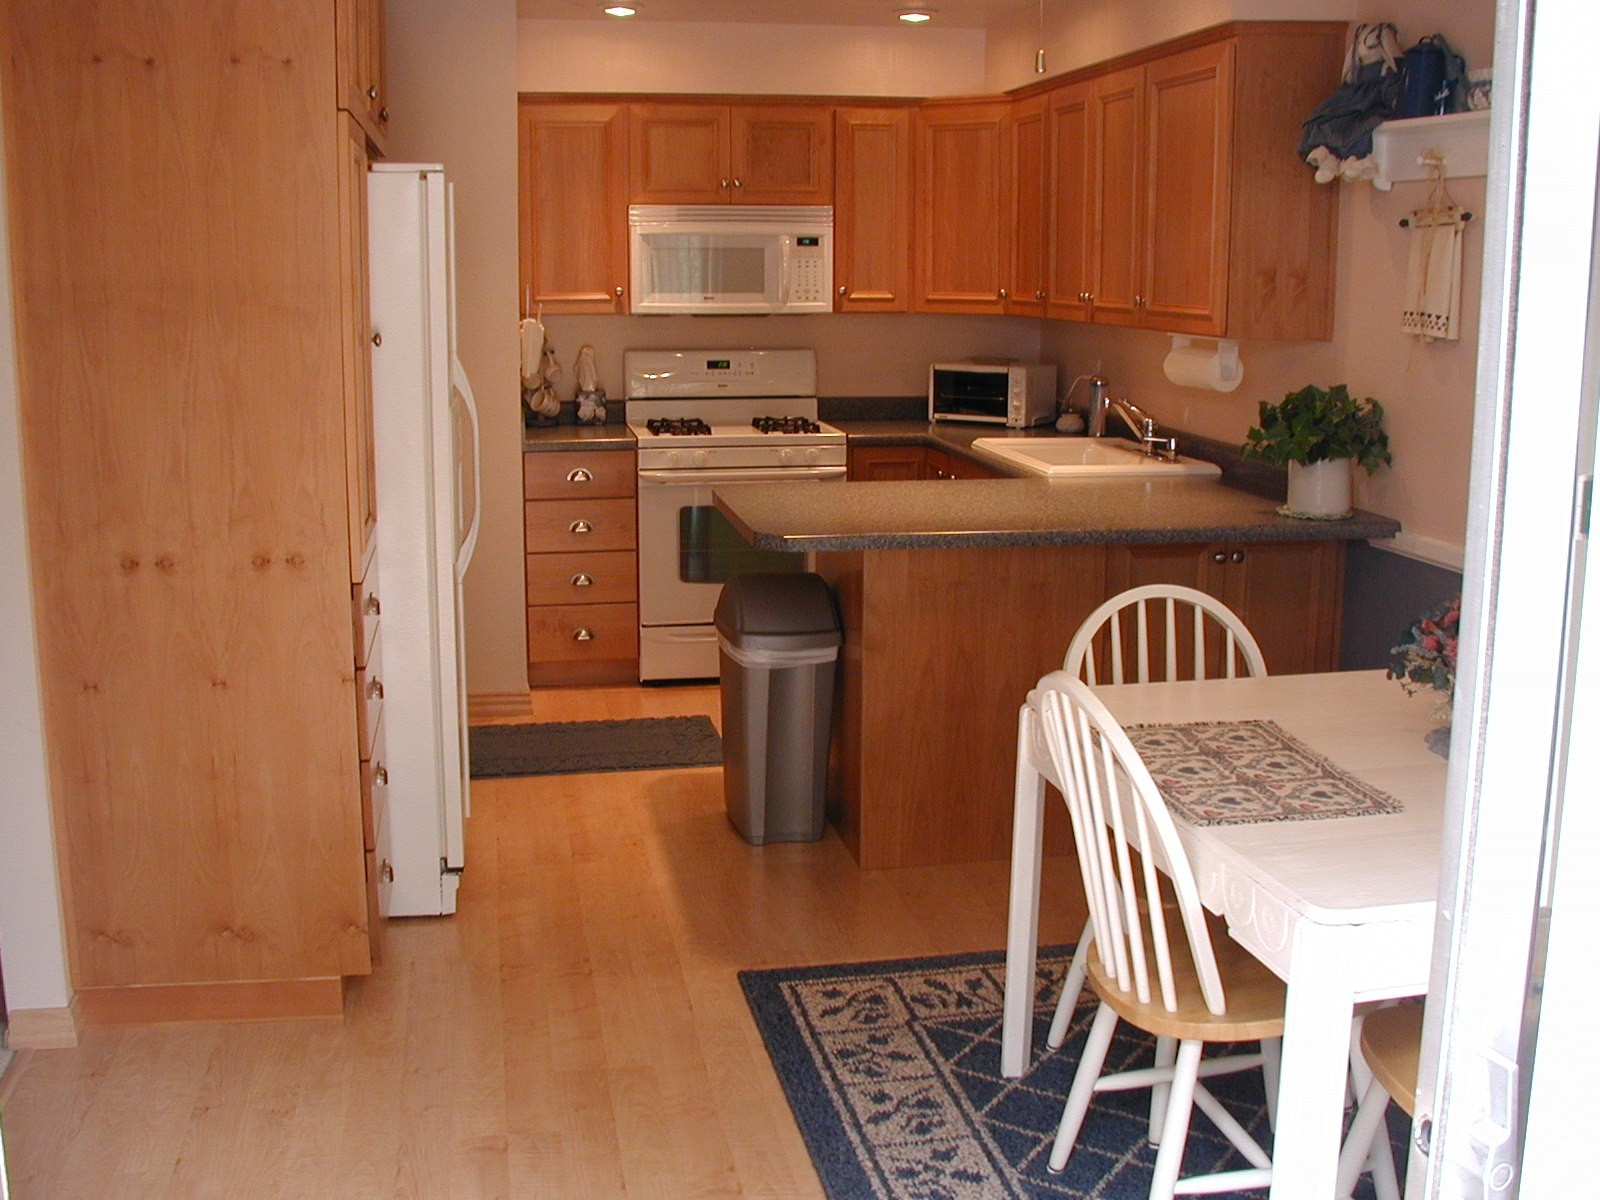 color wood floors 3 wood floors in kitchen color of wood floors kitchen 6